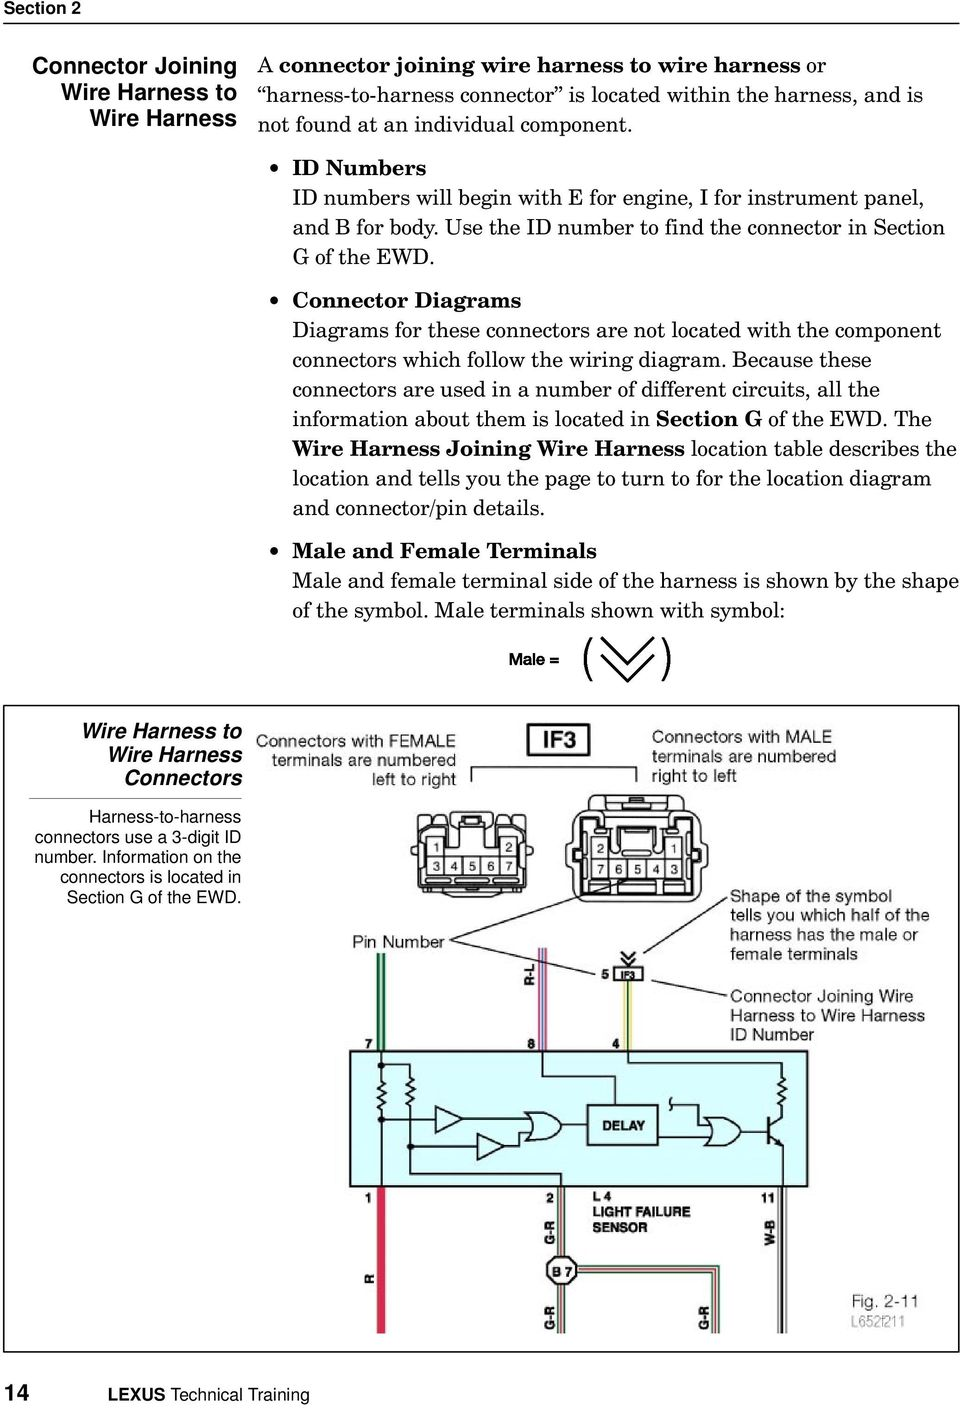 Using The Electrical Wiring Diagram Pdf Autoshop101 Diagrams Connector For These Connectors Are Not Located With Component Which Follow